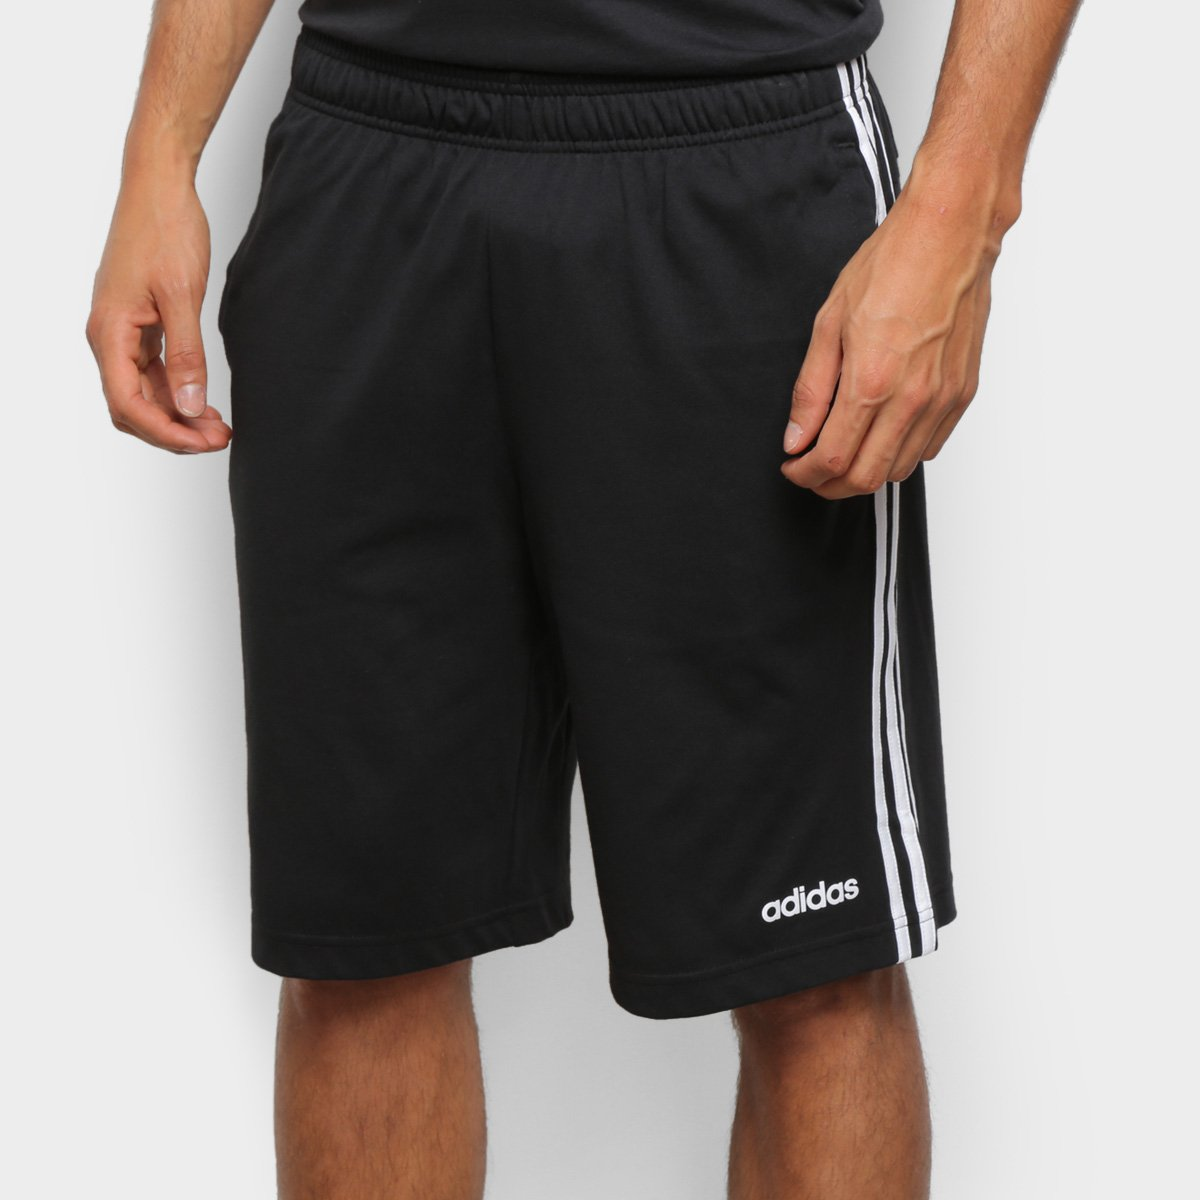 Short Adidas E 3 Stripes SJ Masculino